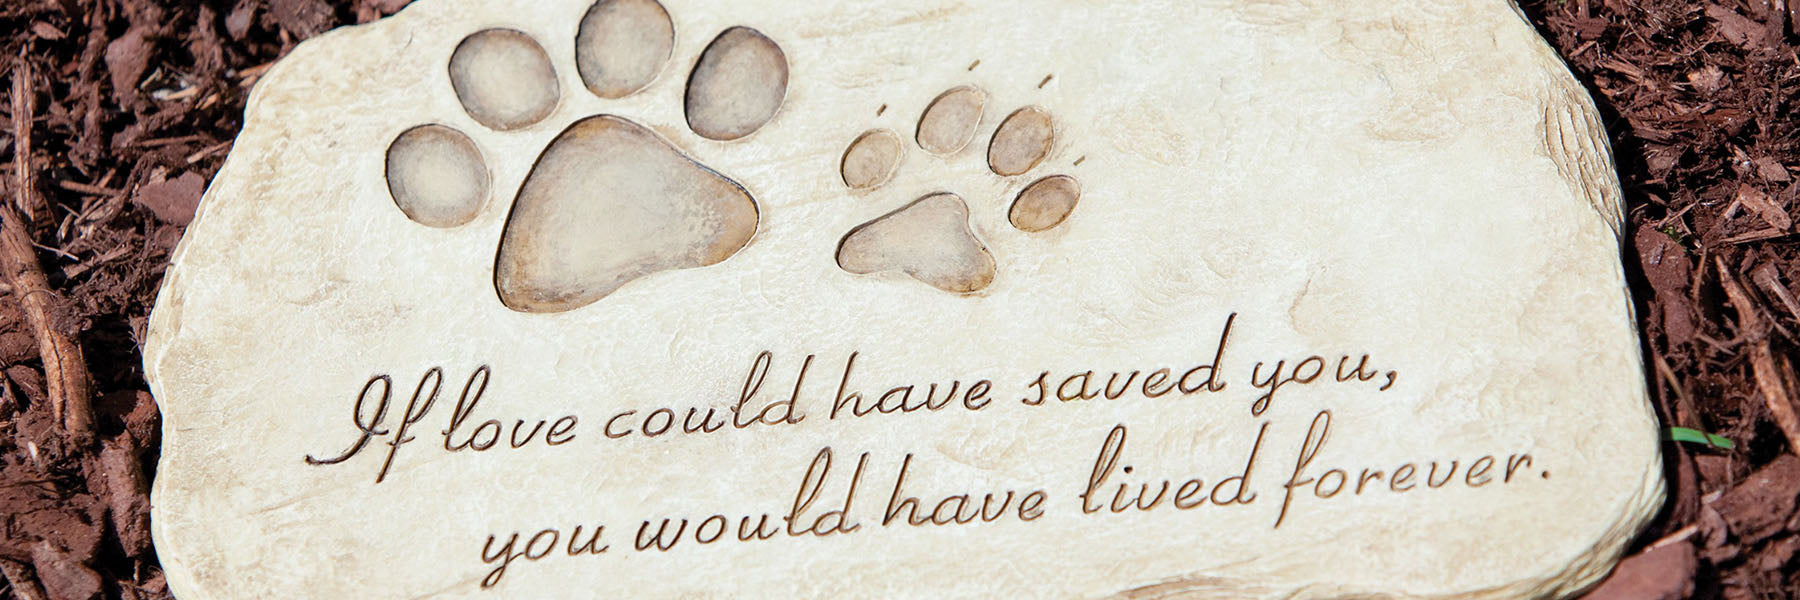 Pet Memorial Rings - Mindy Sue's Story